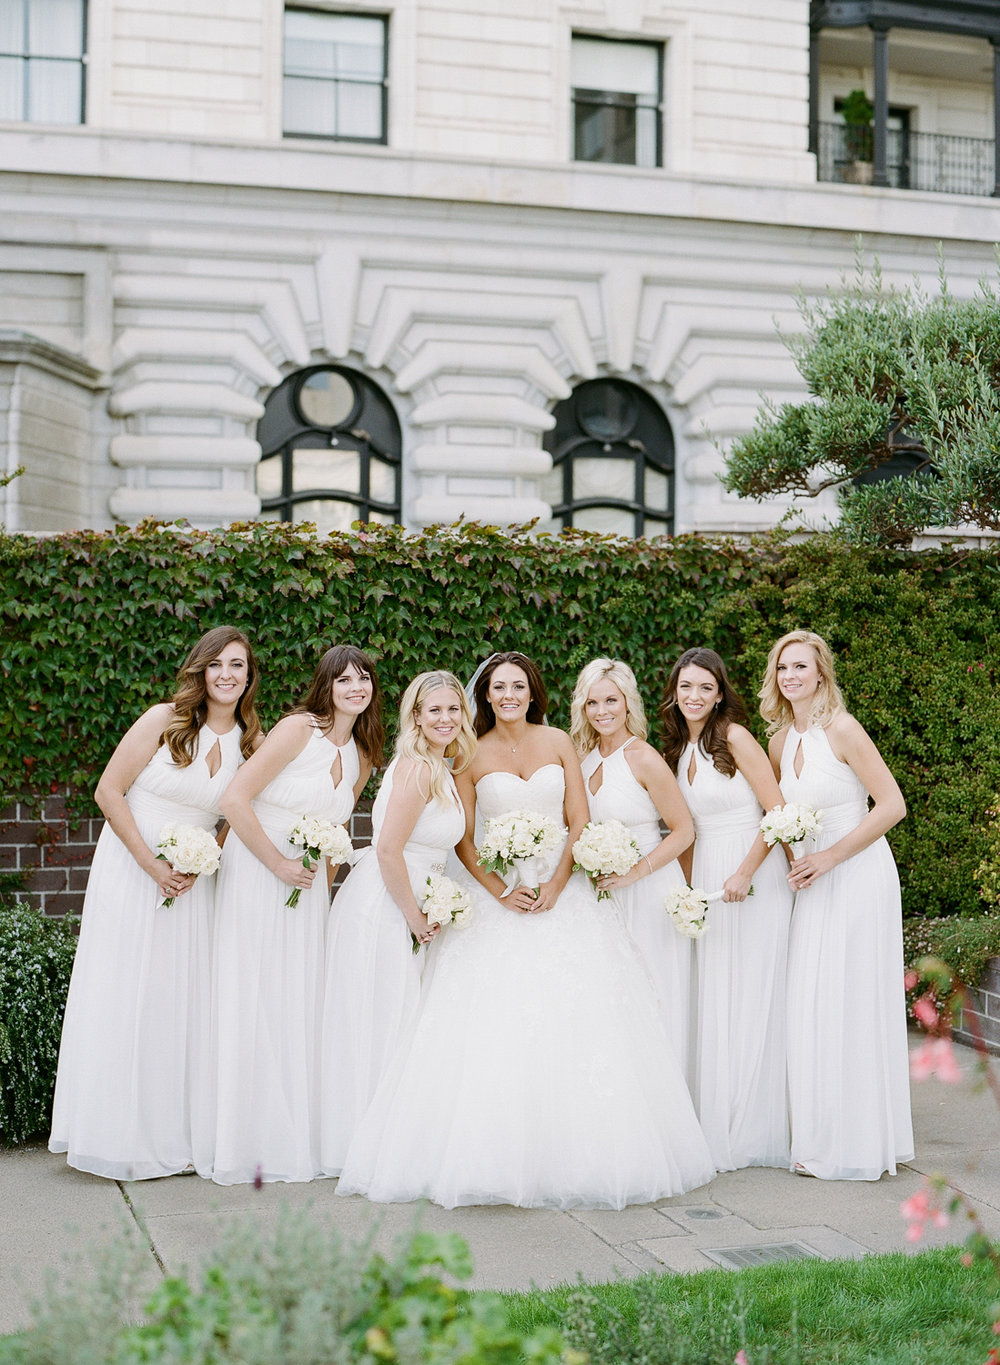 The bridesmaids lean in, dressed in elegant white gowns, for a bridal party shoot; photo by Sylvie Gil